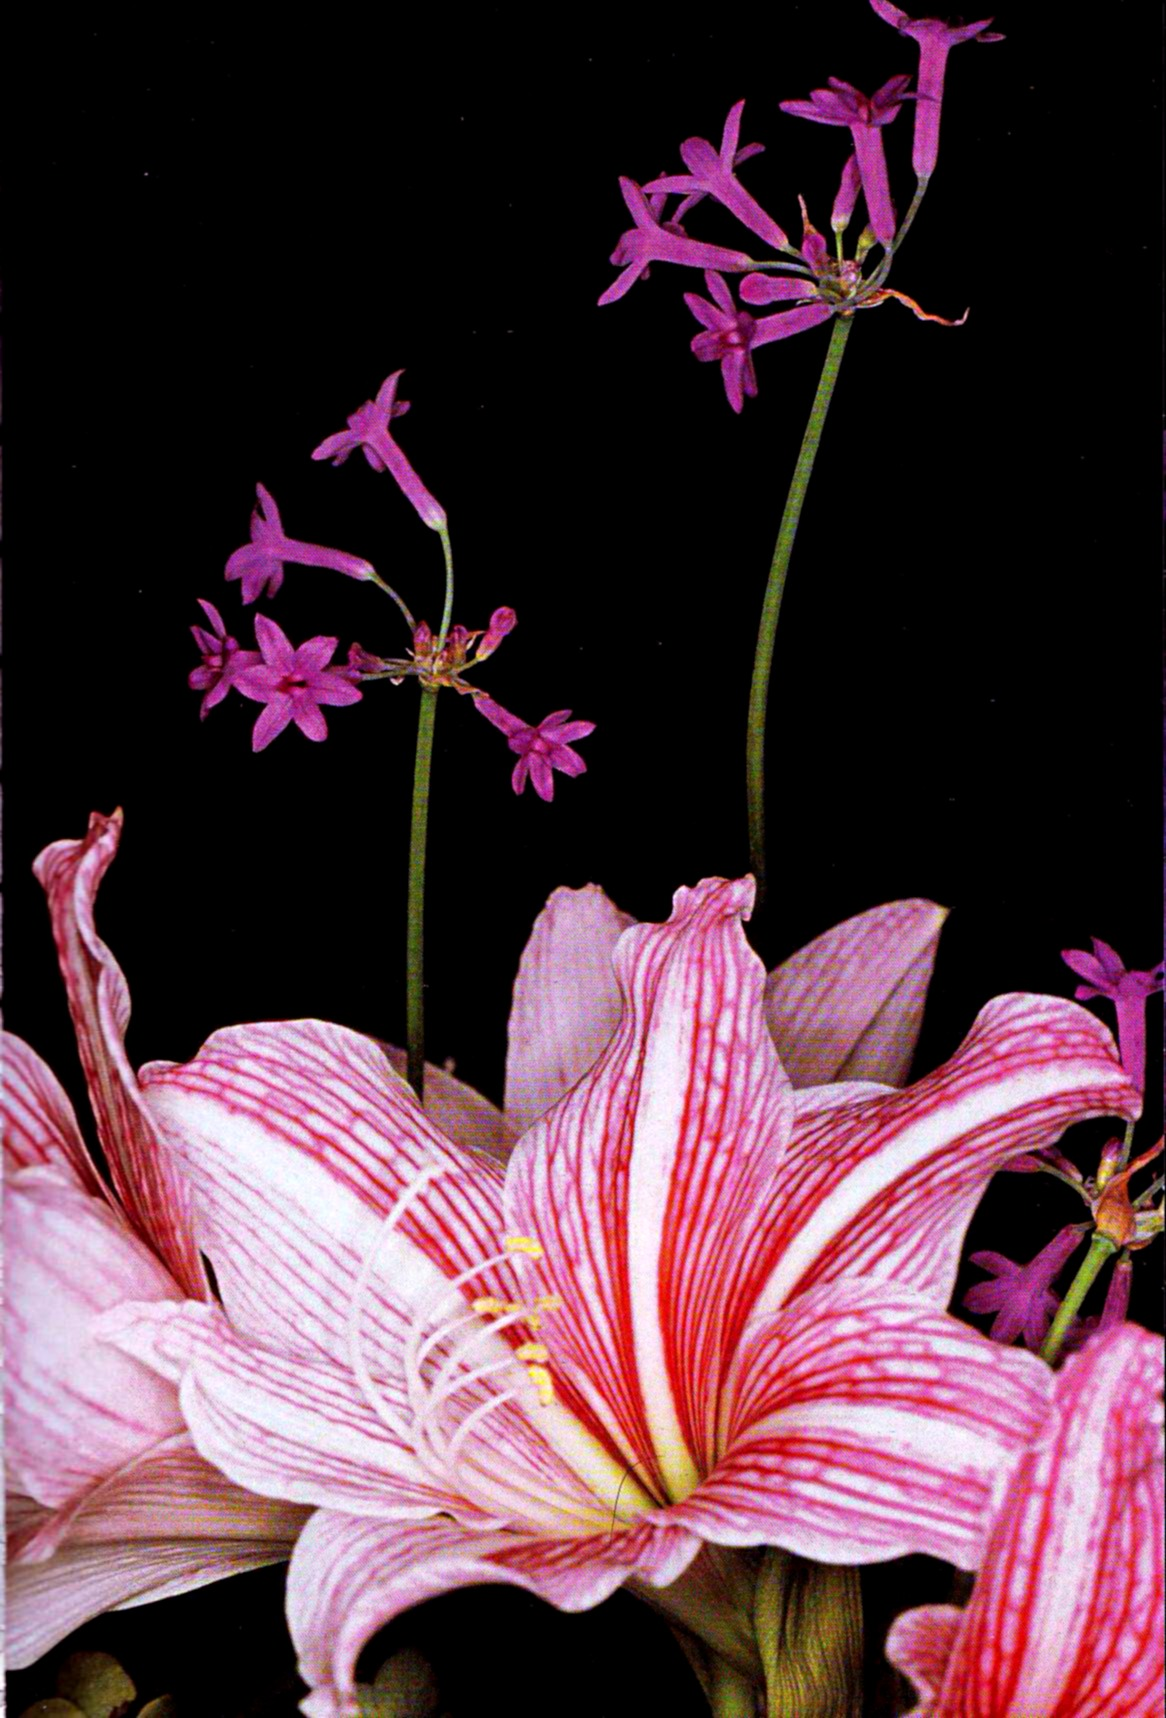 flower-photography-nobuyoshi-araki-untitled-from-flowers-1990